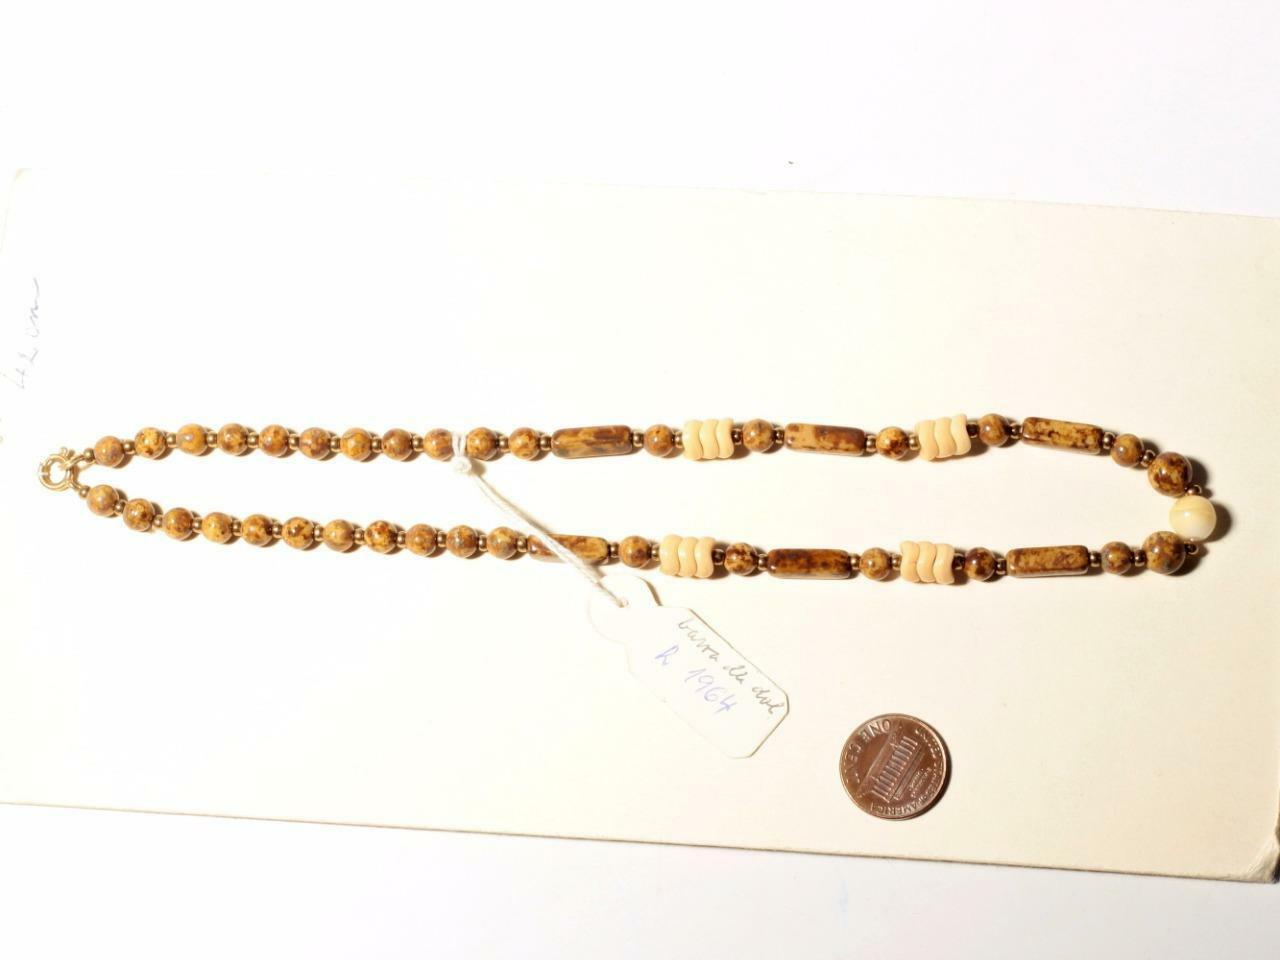 Marble Necklace Caramel Necklace Beaded Necklace Layered Necklace Vintage Necklace Bohemian Necklace Taupe Marble Czech Beads Necklace